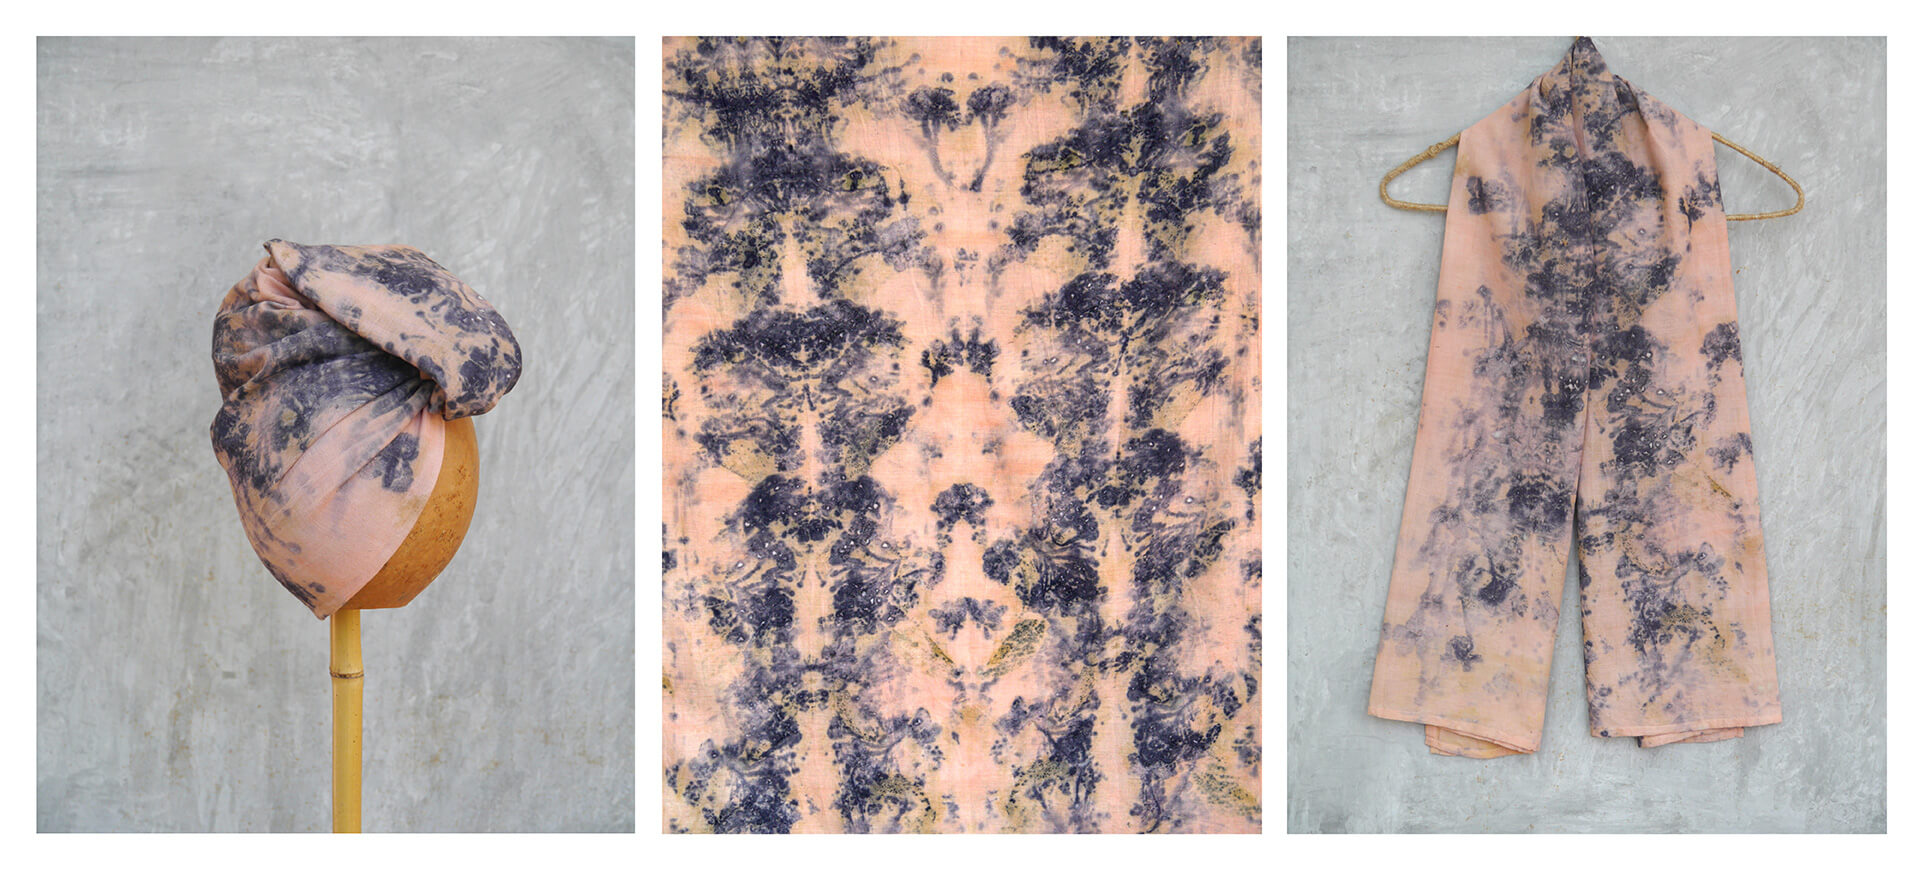 Bundle-dyed shawl with colourants derived from wild flowers | Made in Sri Lanka: Curated by Colomboscope | STIRworld